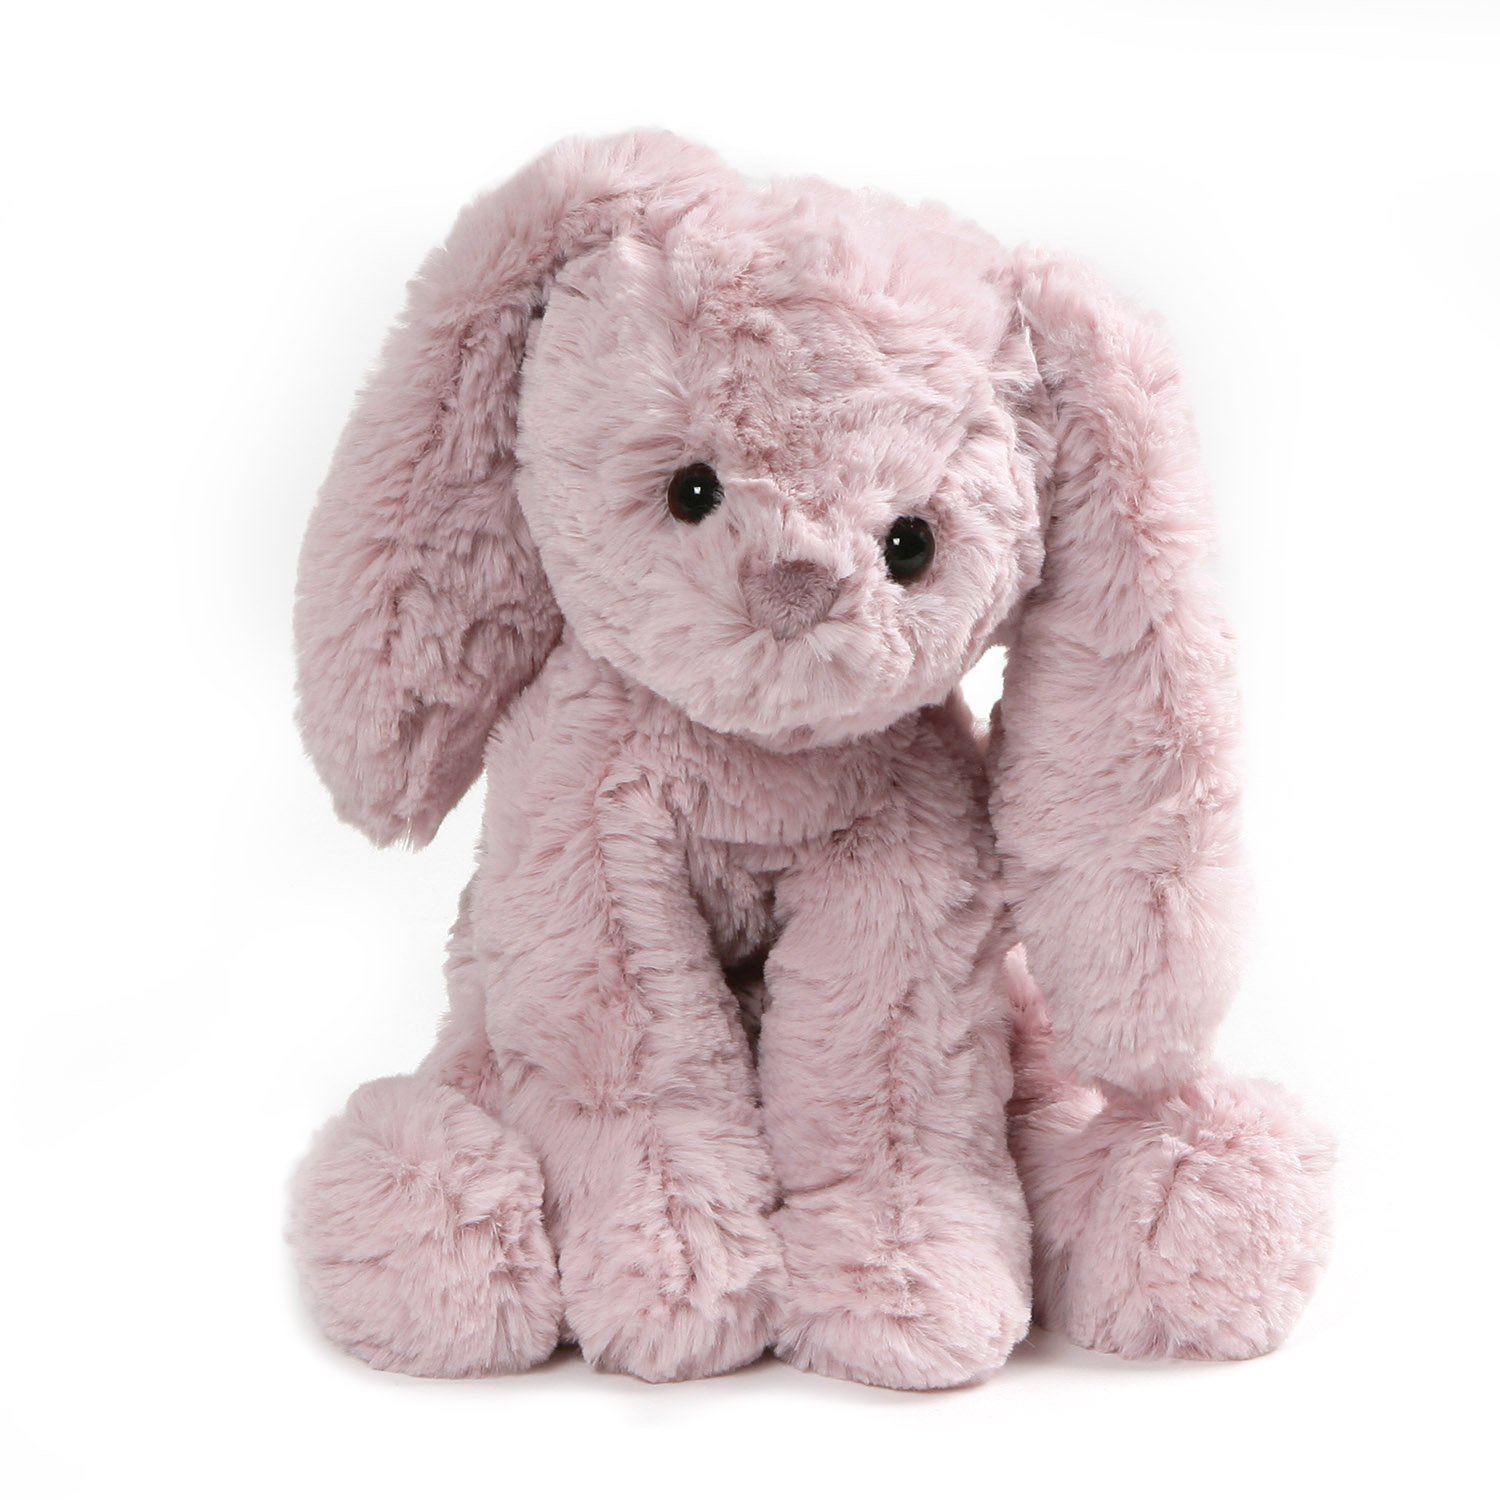 GUND Cozys Collection Bunny Rabbit Stuffed Animal Plush, 10""